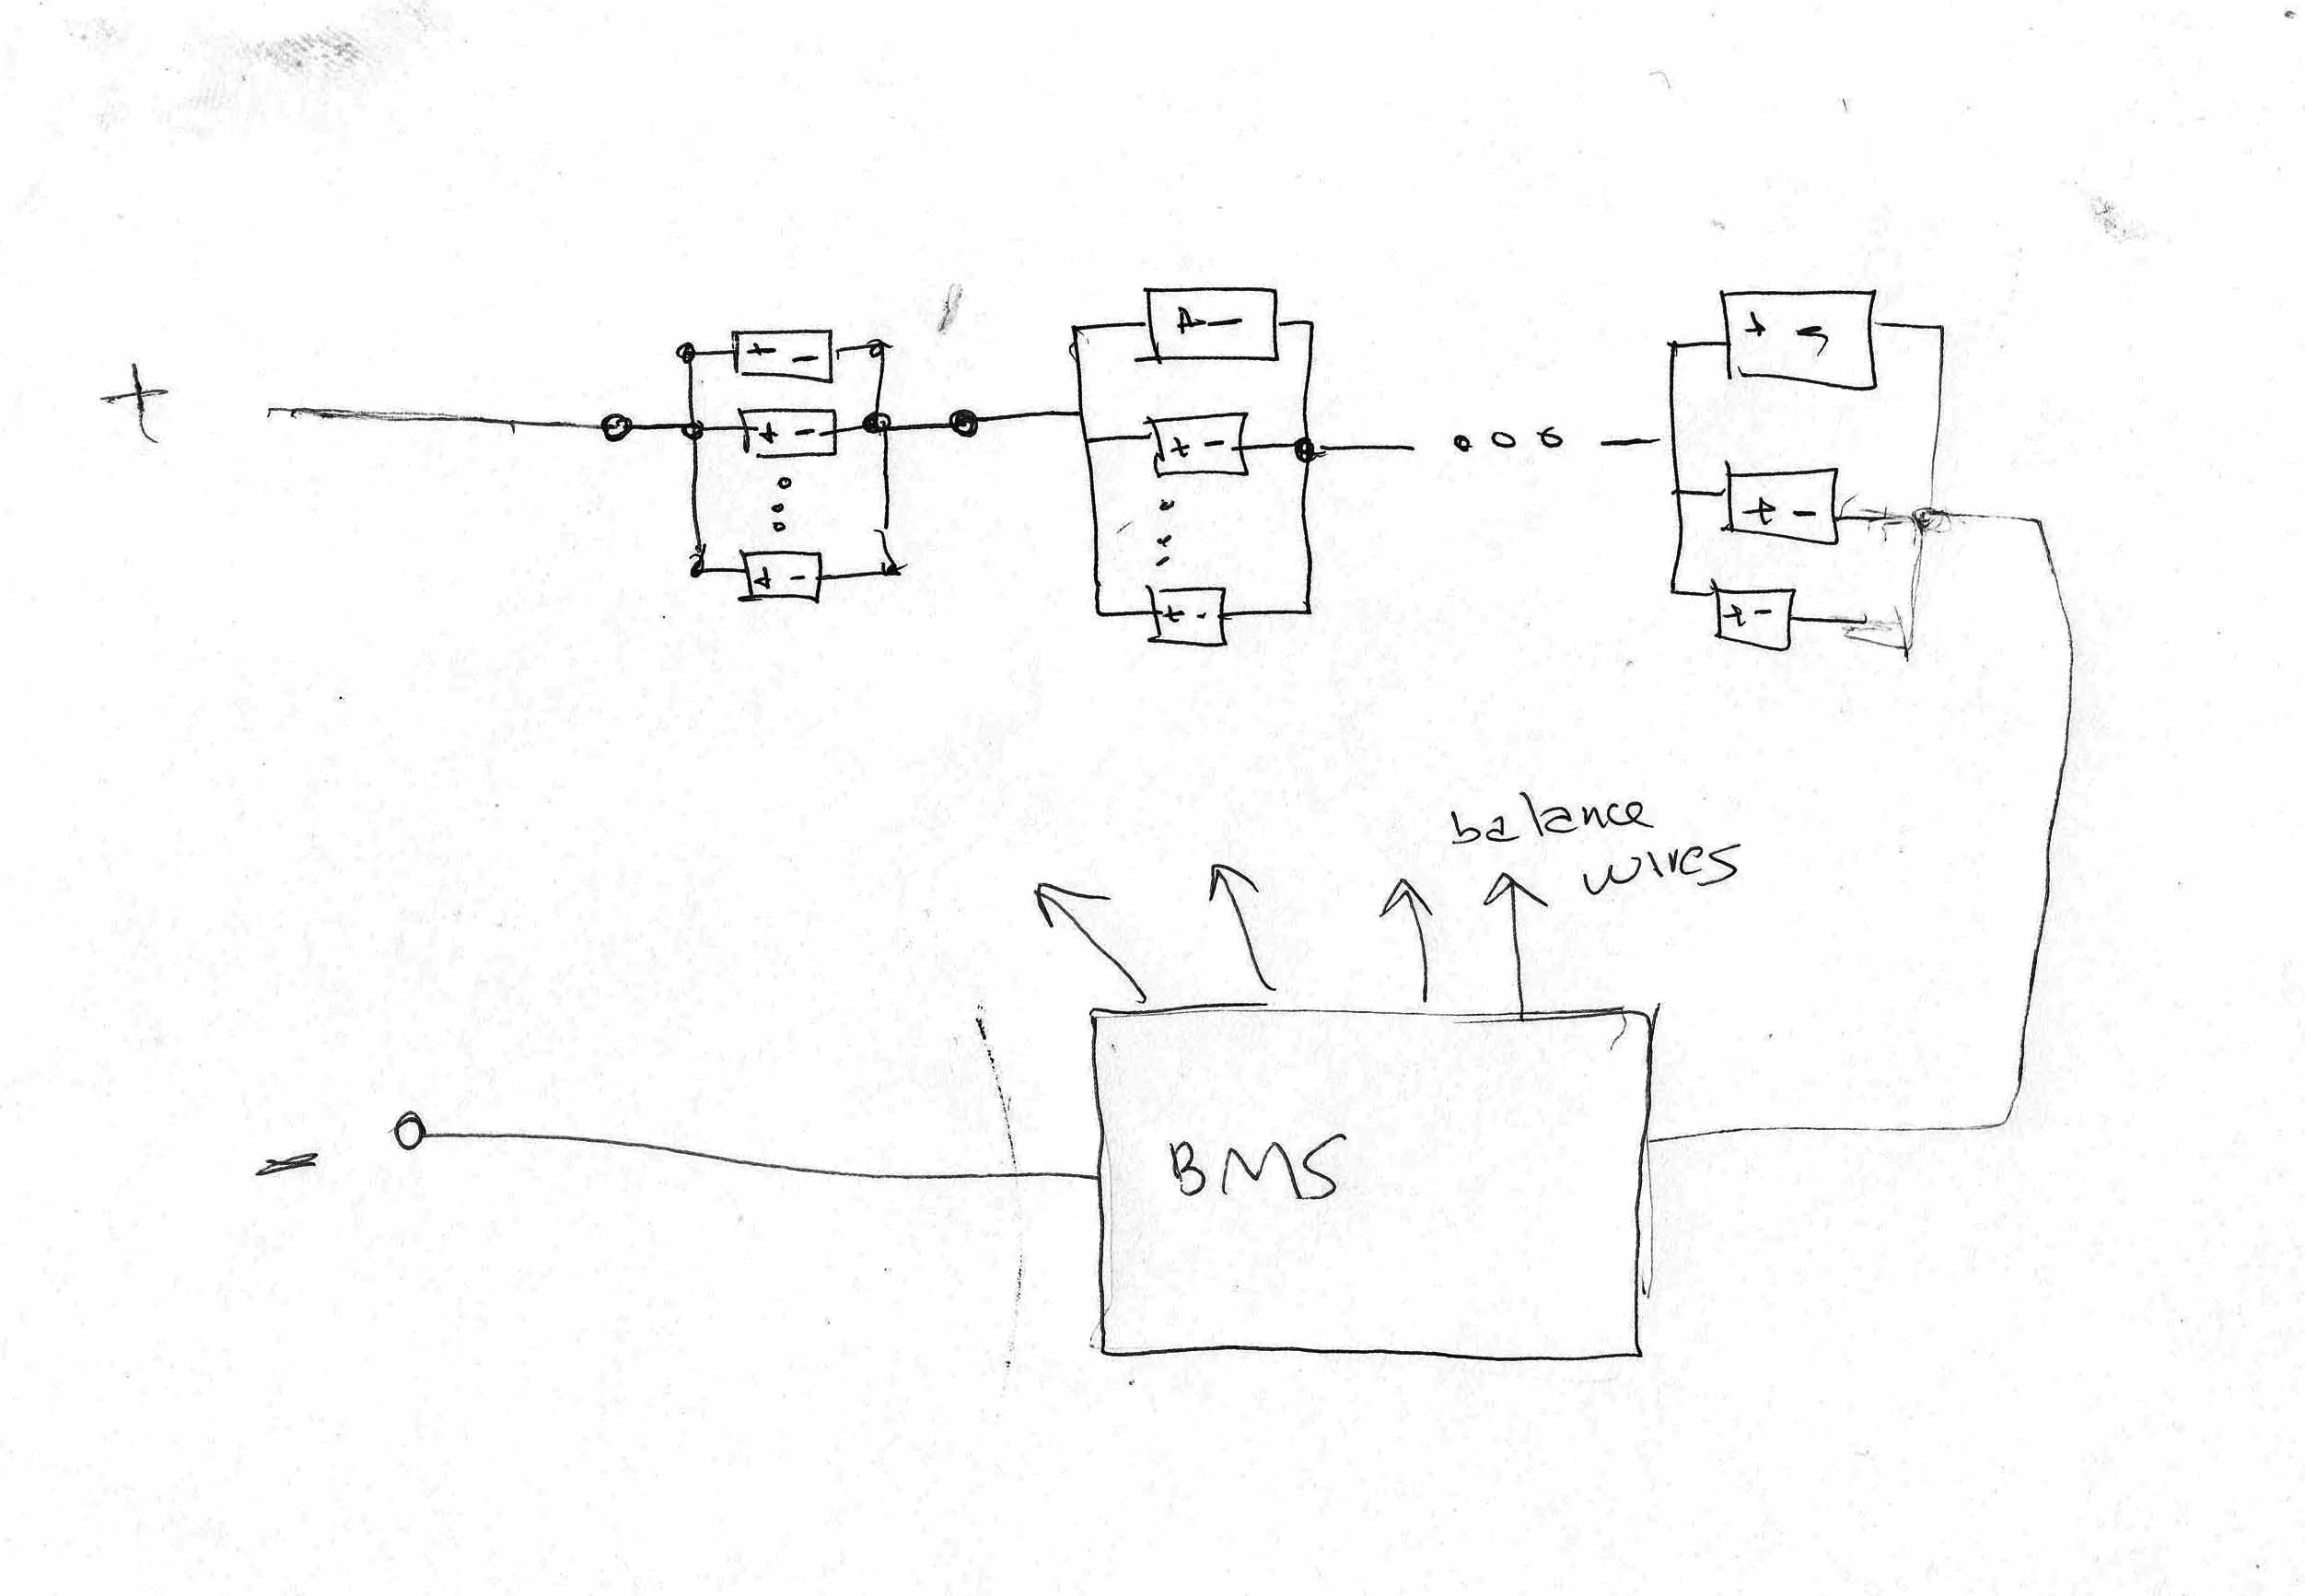 18650 Battery Wiring Diagram Basic Series Parallel Connection Spot Welding Circuit That Shows 24 Batteries Wired Up To Make An 8 Volt Im Not Sure You Have This Figured Out Yet